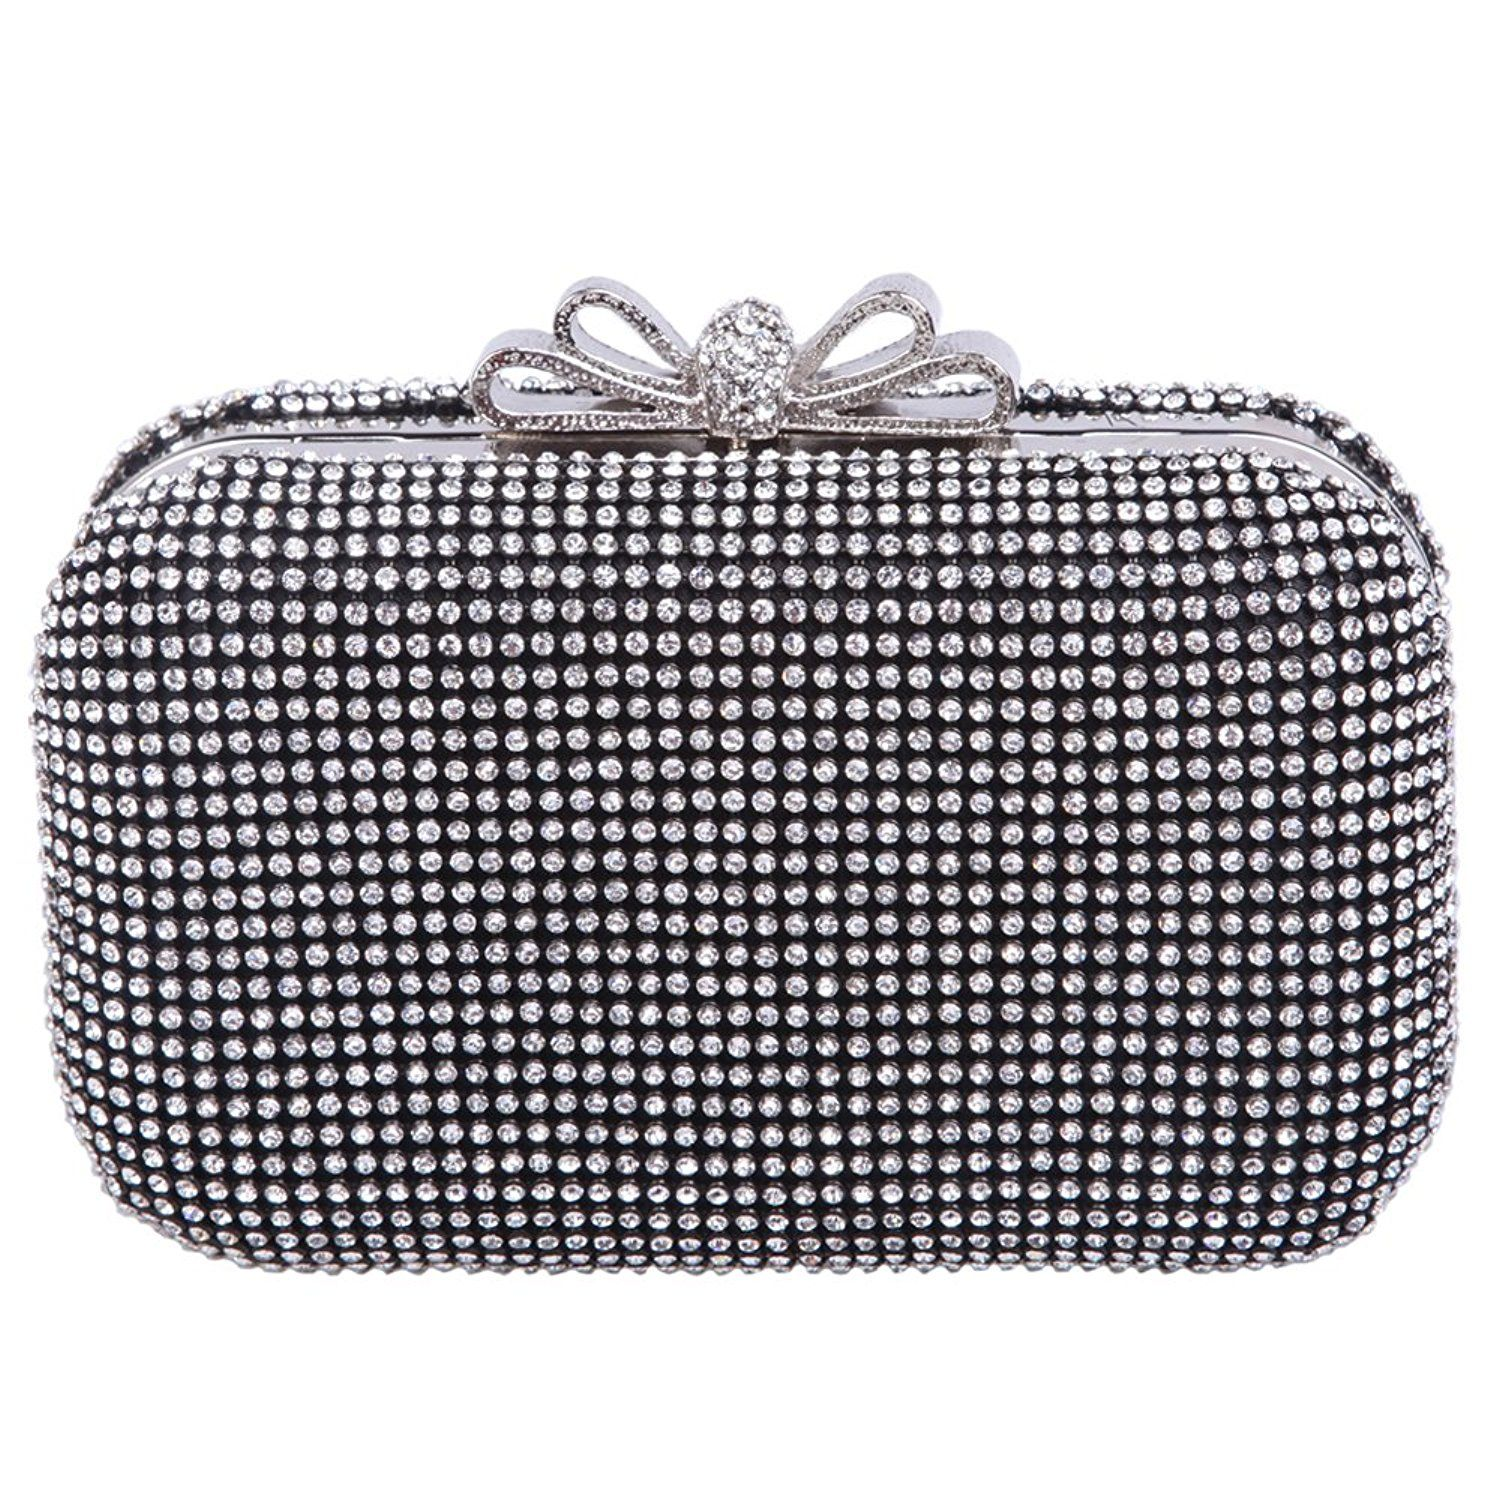 bd1e1351ff Ainemay Metal Bow Clasp Rhinestone Crystal Box Clutch Evening Bags --  Review more details here : Evening Handbags